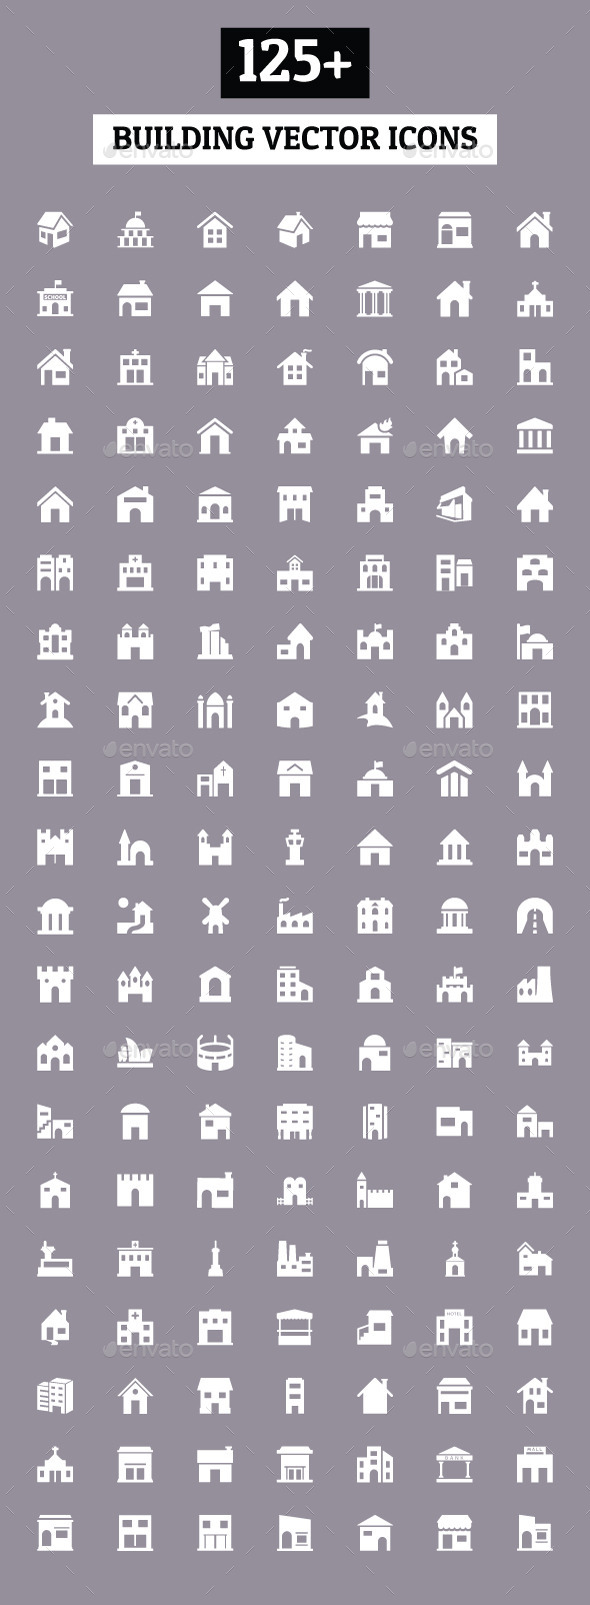 125+ Building Vector Icons - Buildings Objects